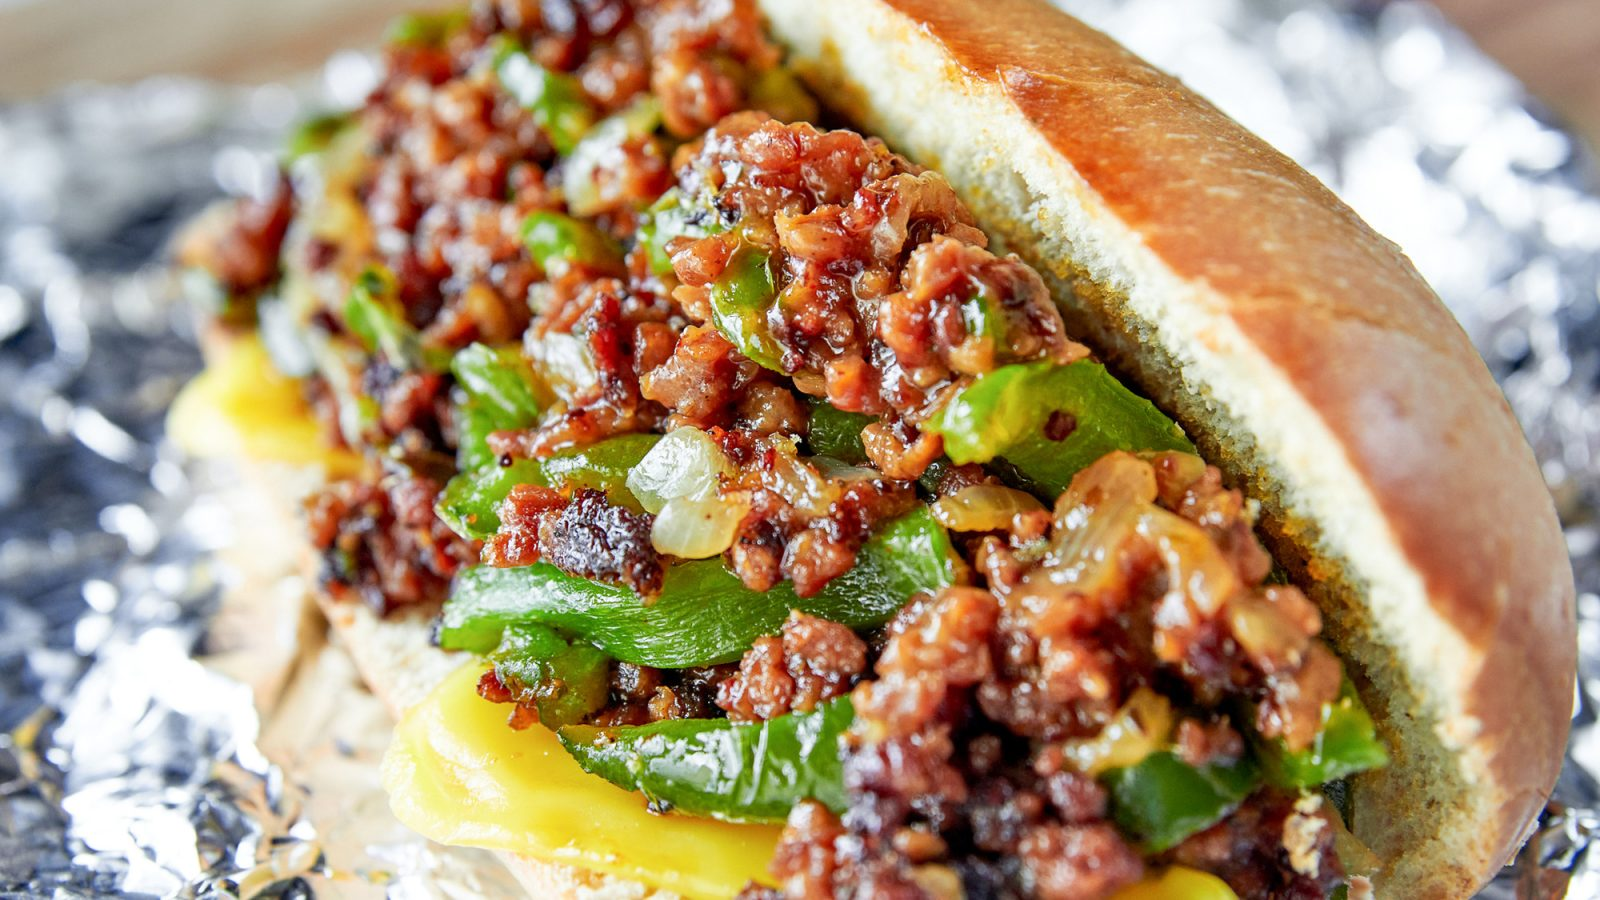 vegan philly cheesesteak with green peppers and onions